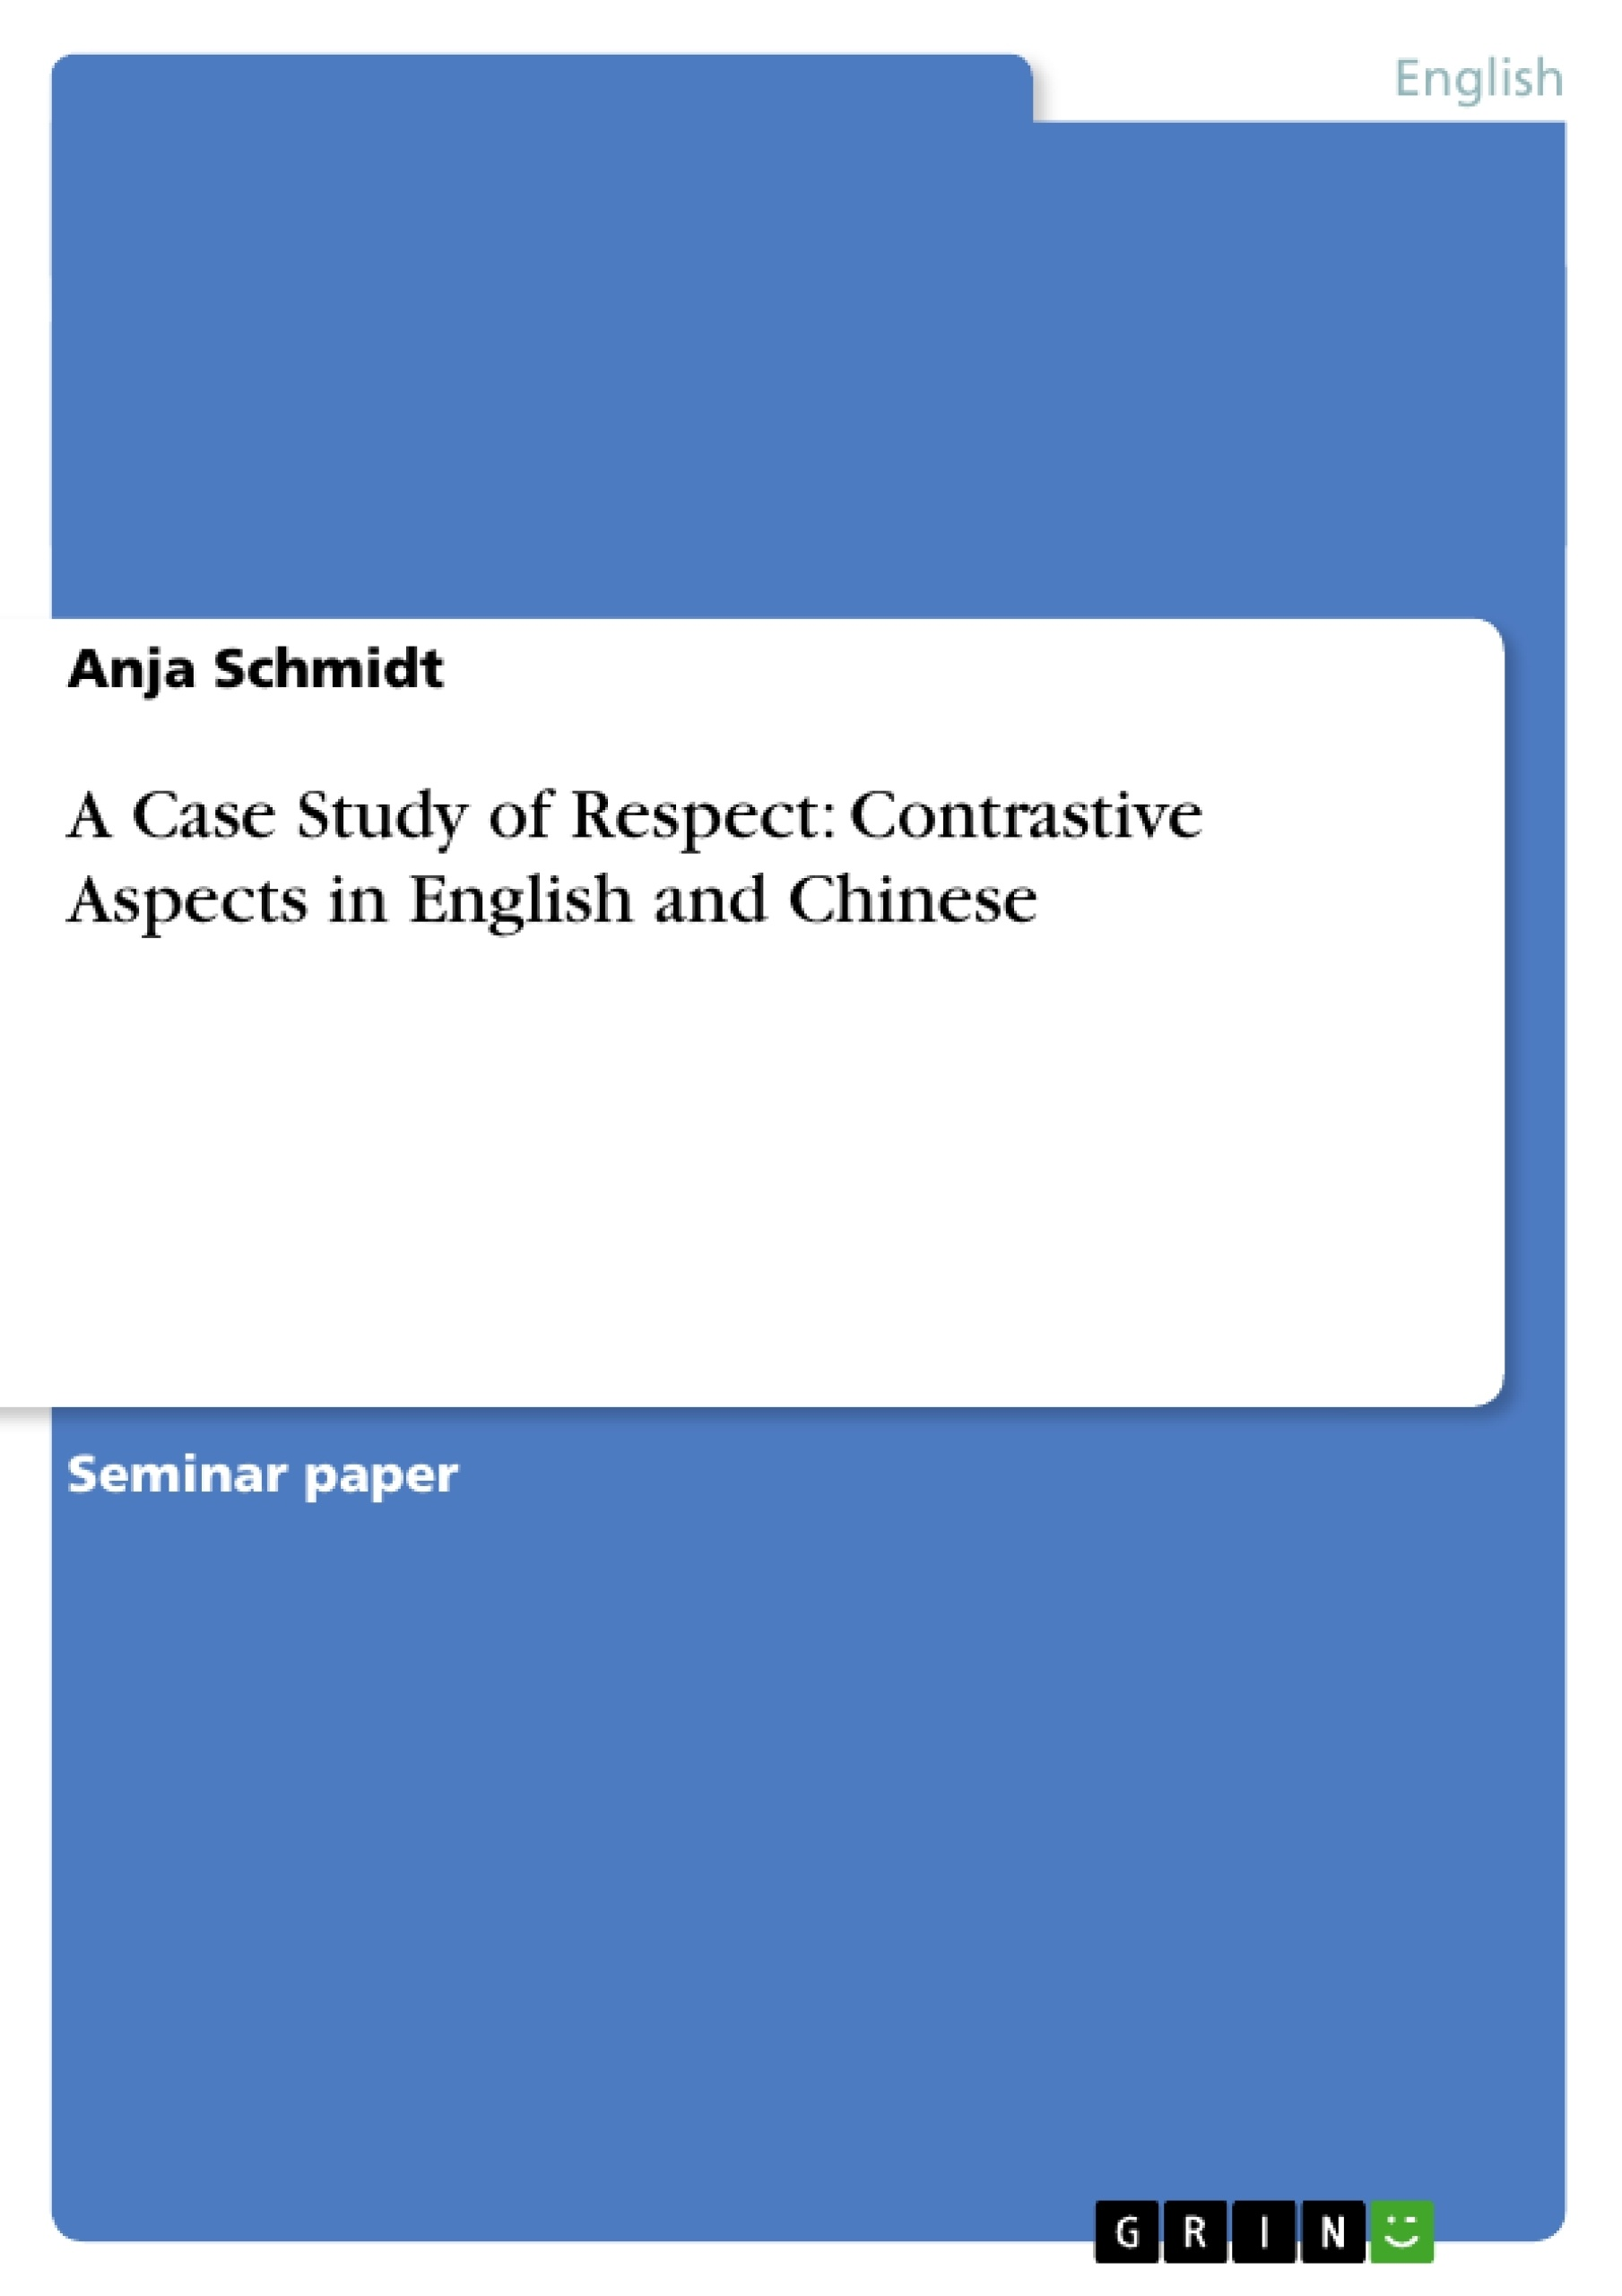 Title: A Case Study of Respect: Contrastive Aspects in English and Chinese